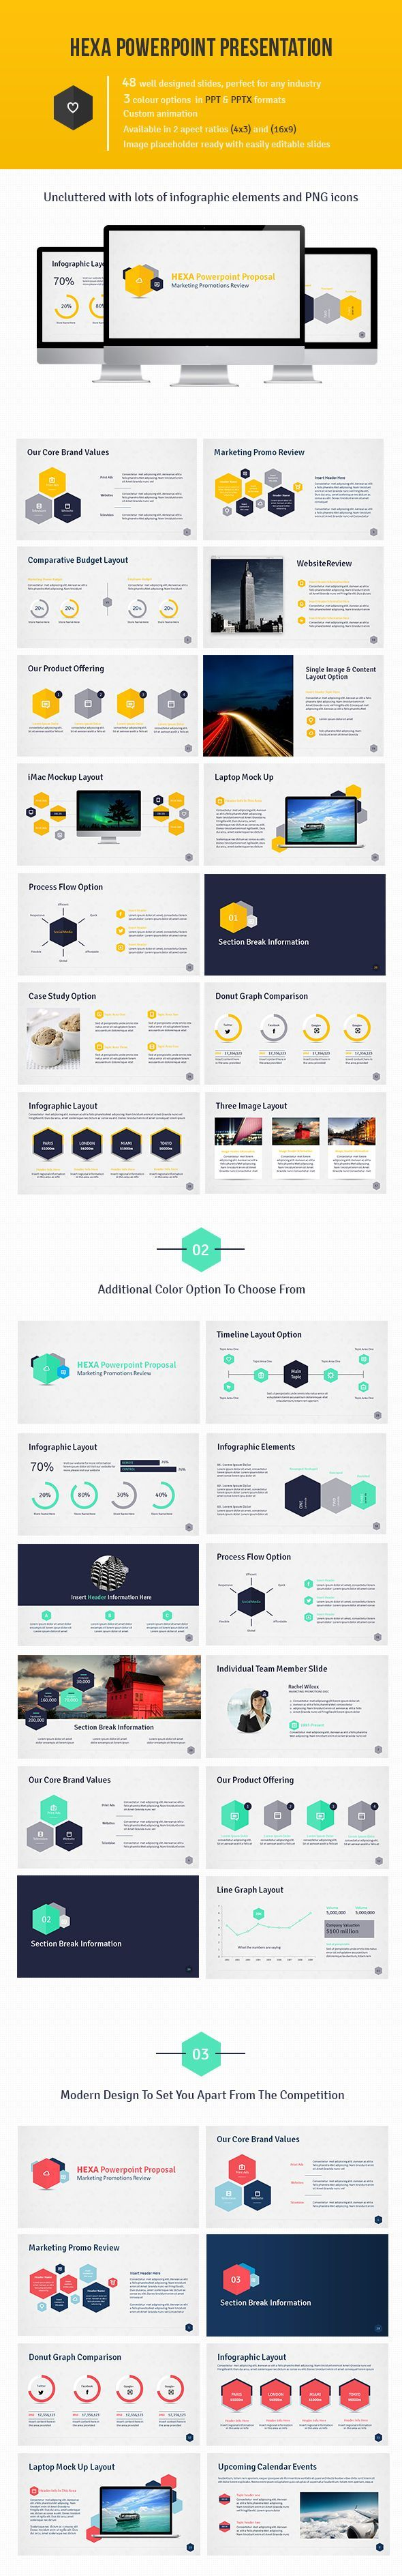 98 best diagrams images on pinterest | architectural models, Presentation templates